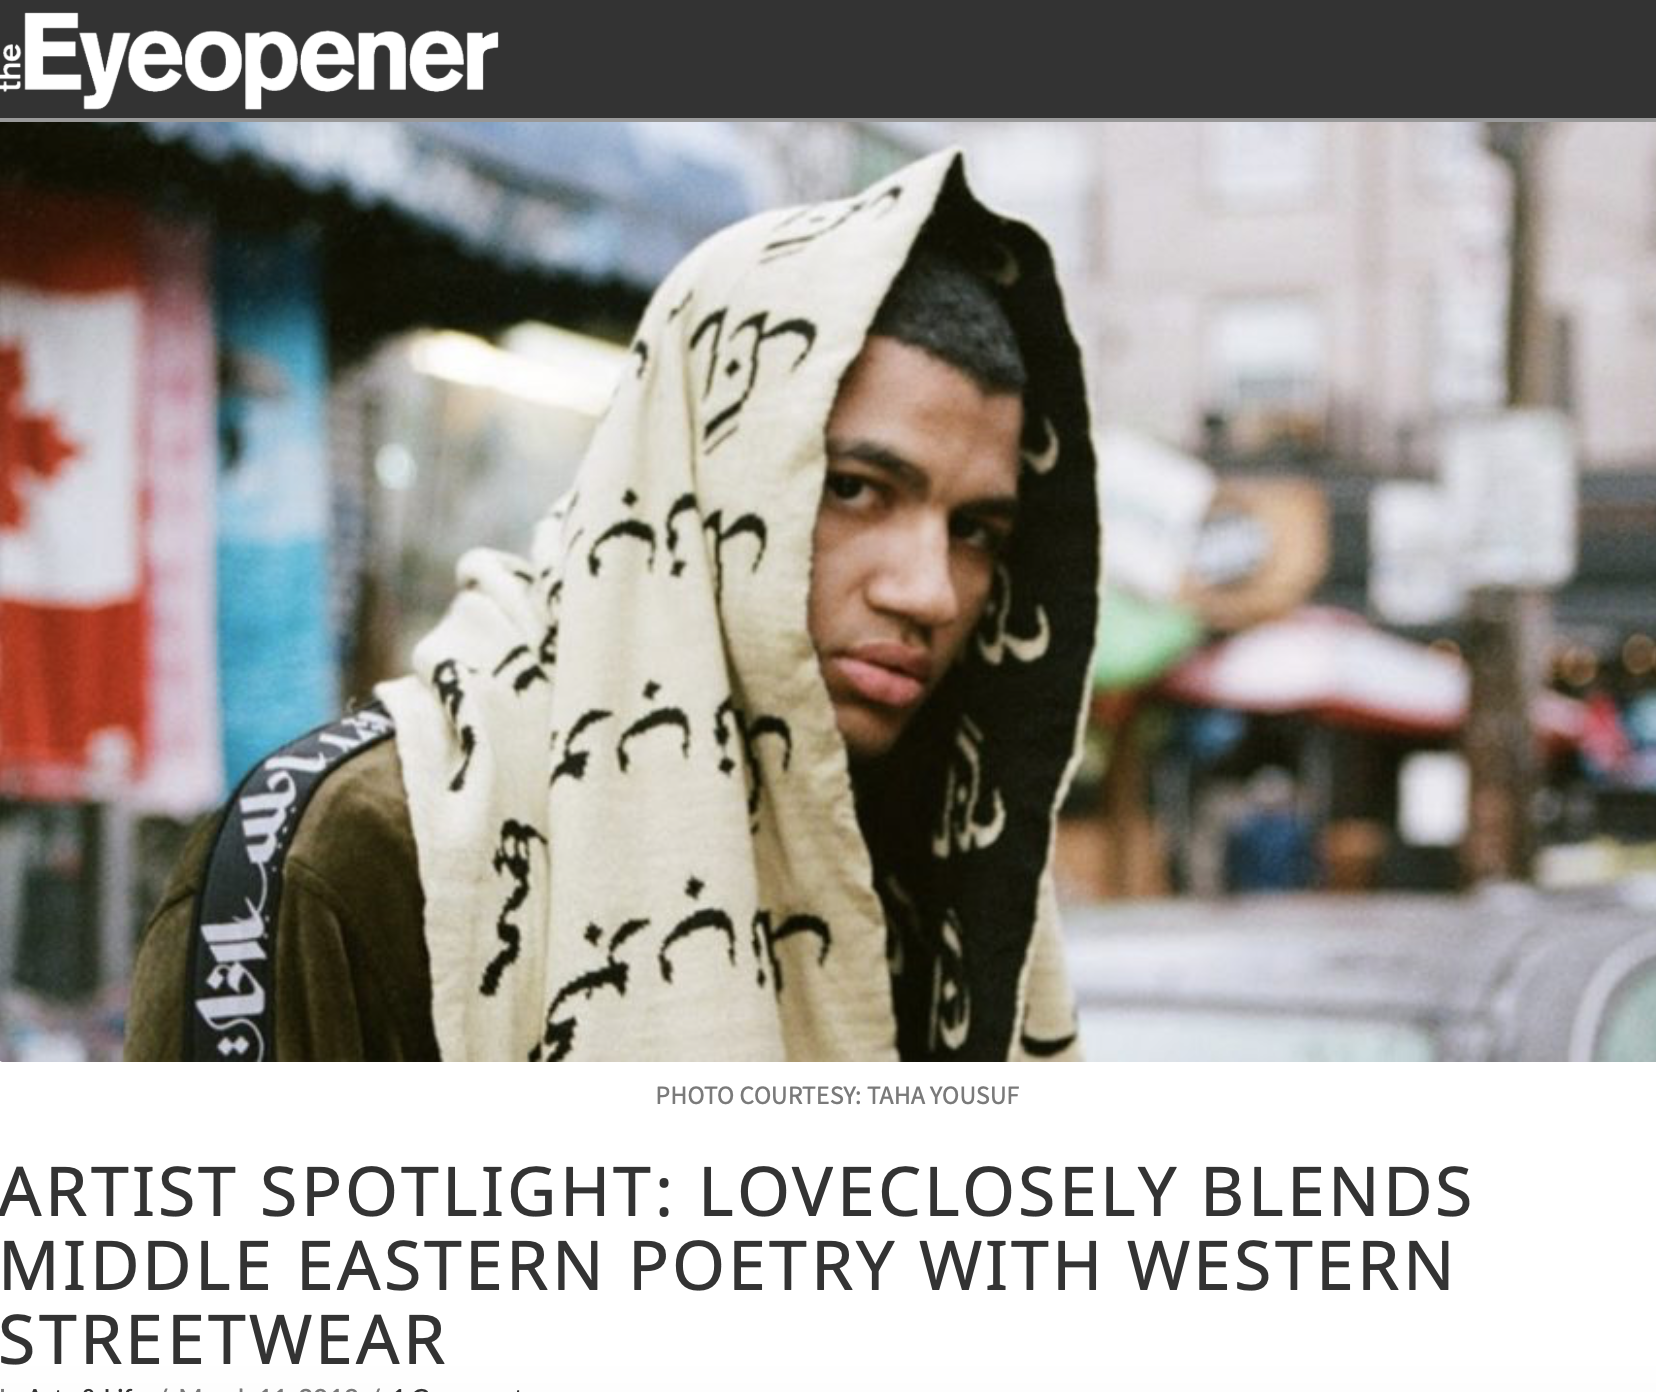 loveclosely-ryerson-theeyeopener.png